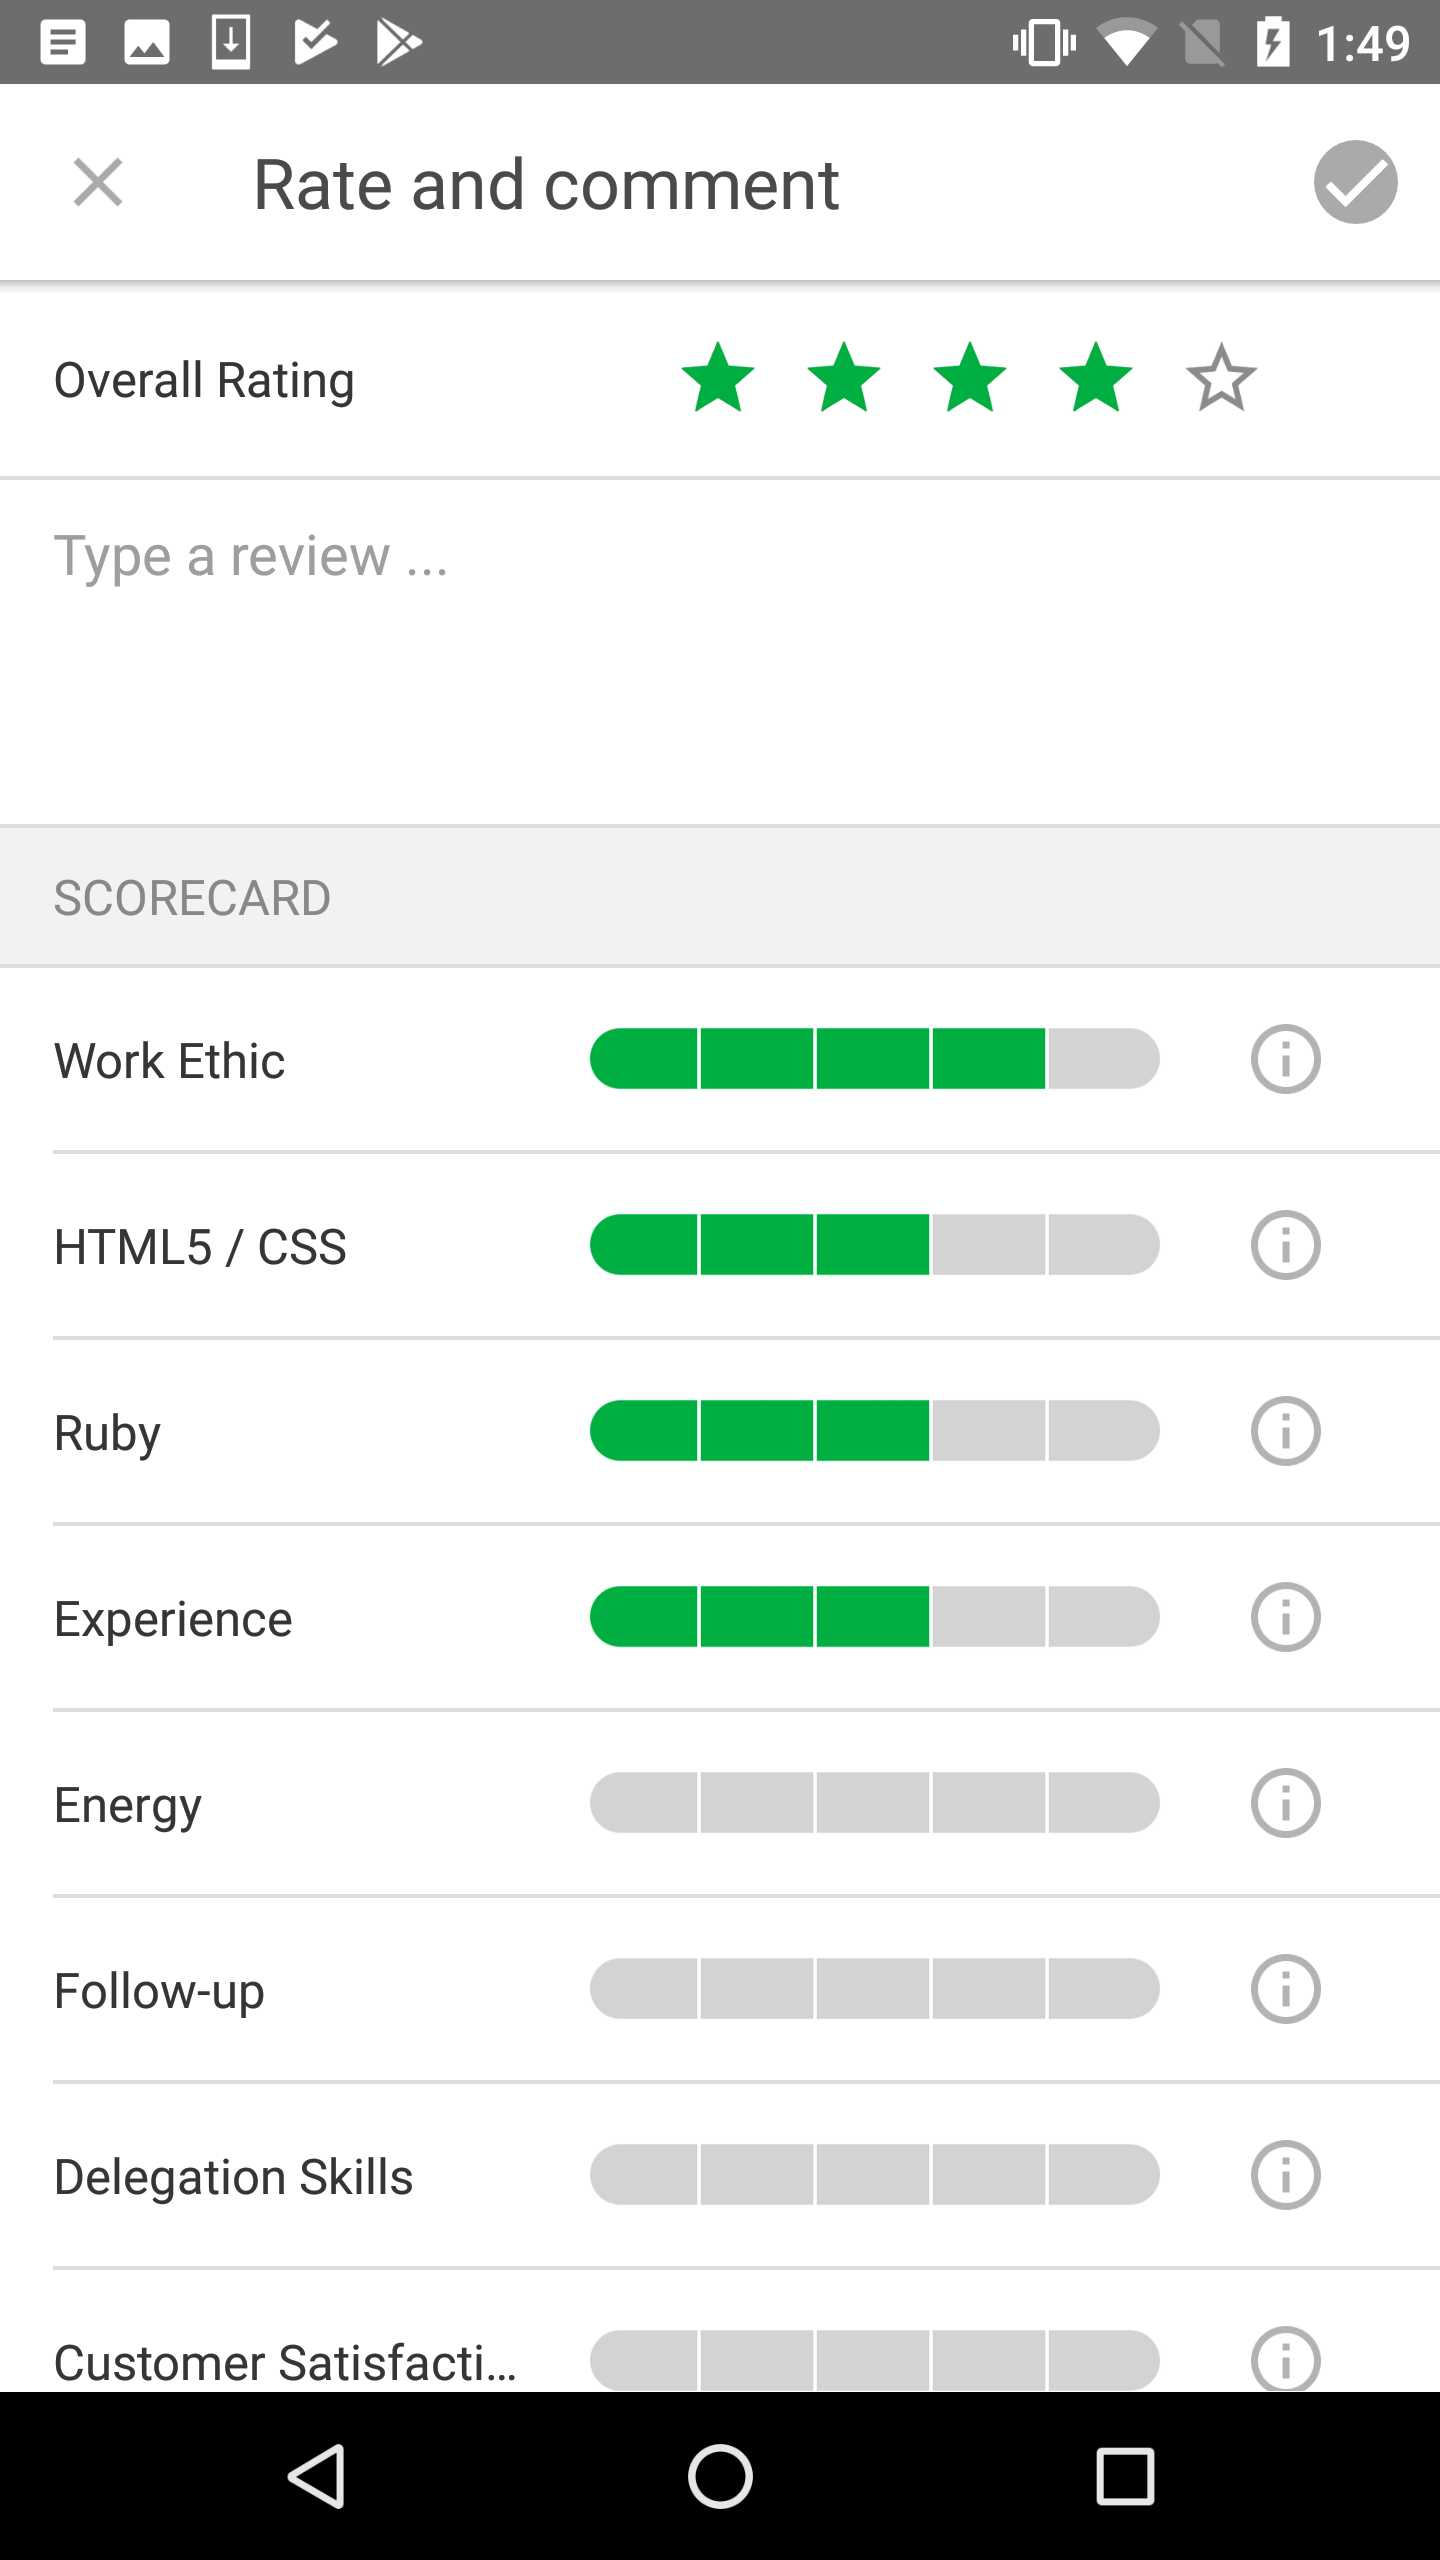 FillOutScorecard_Android.png